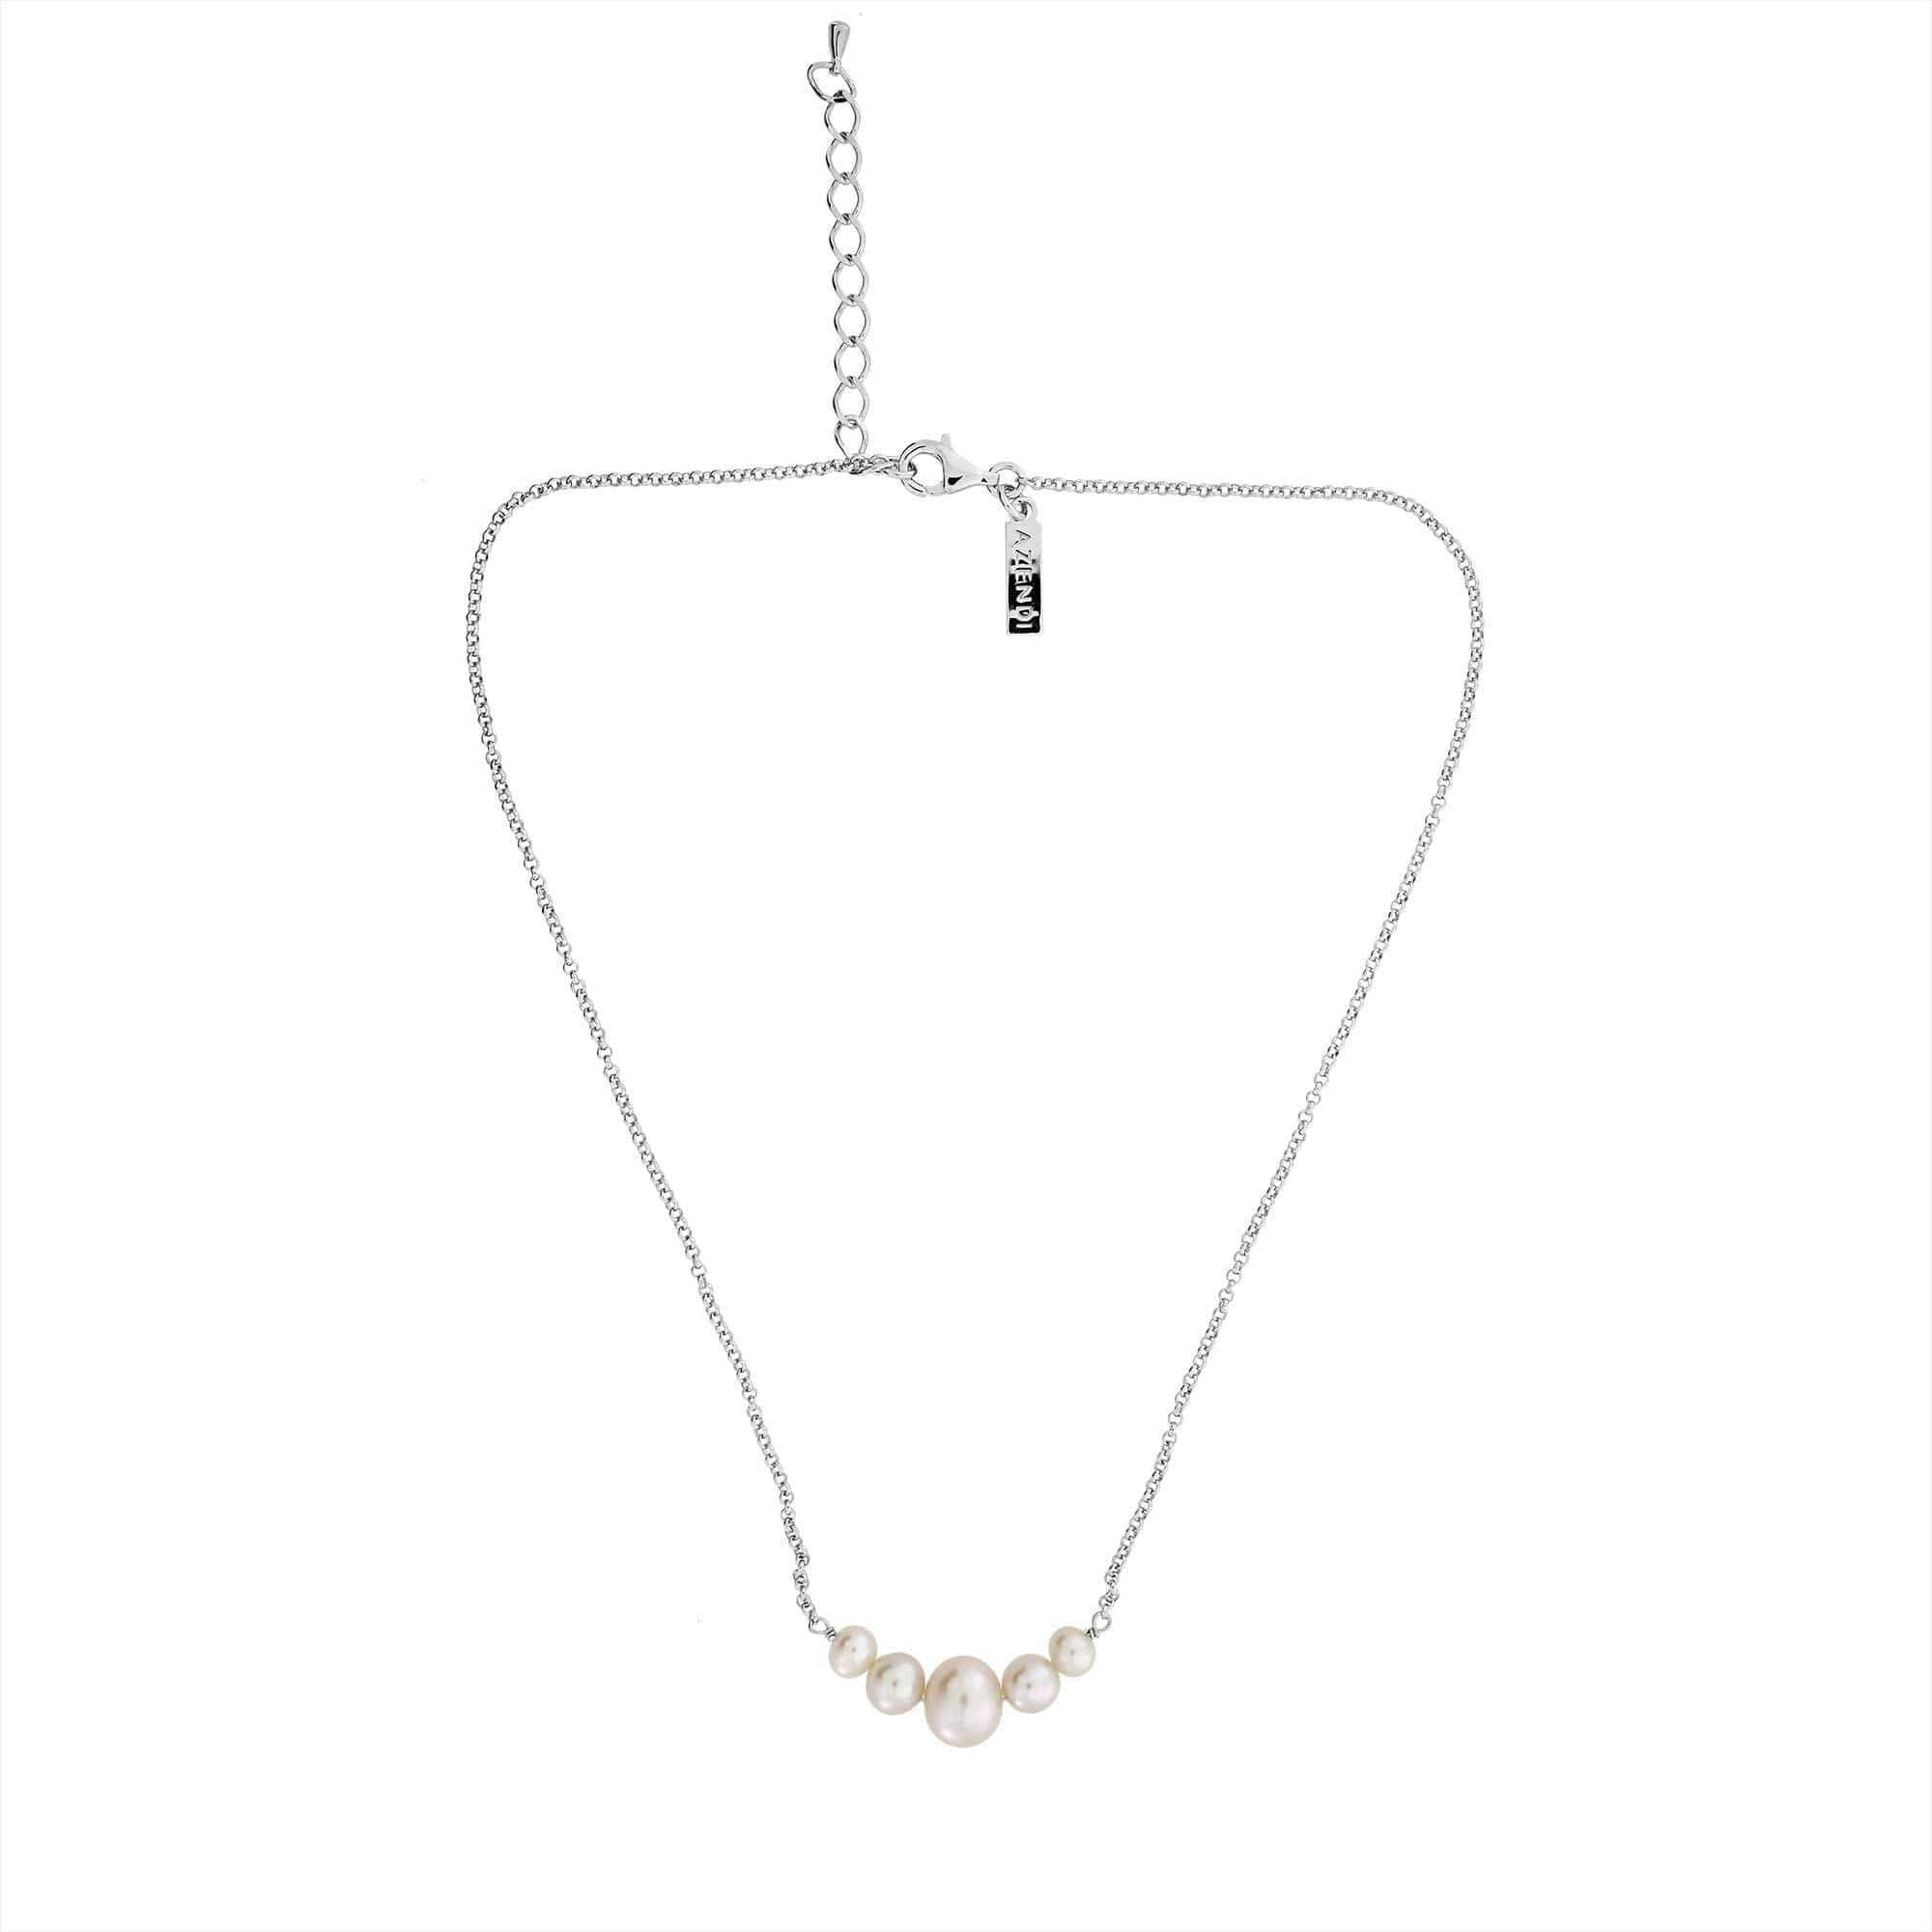 Graduated Pearls Necklace